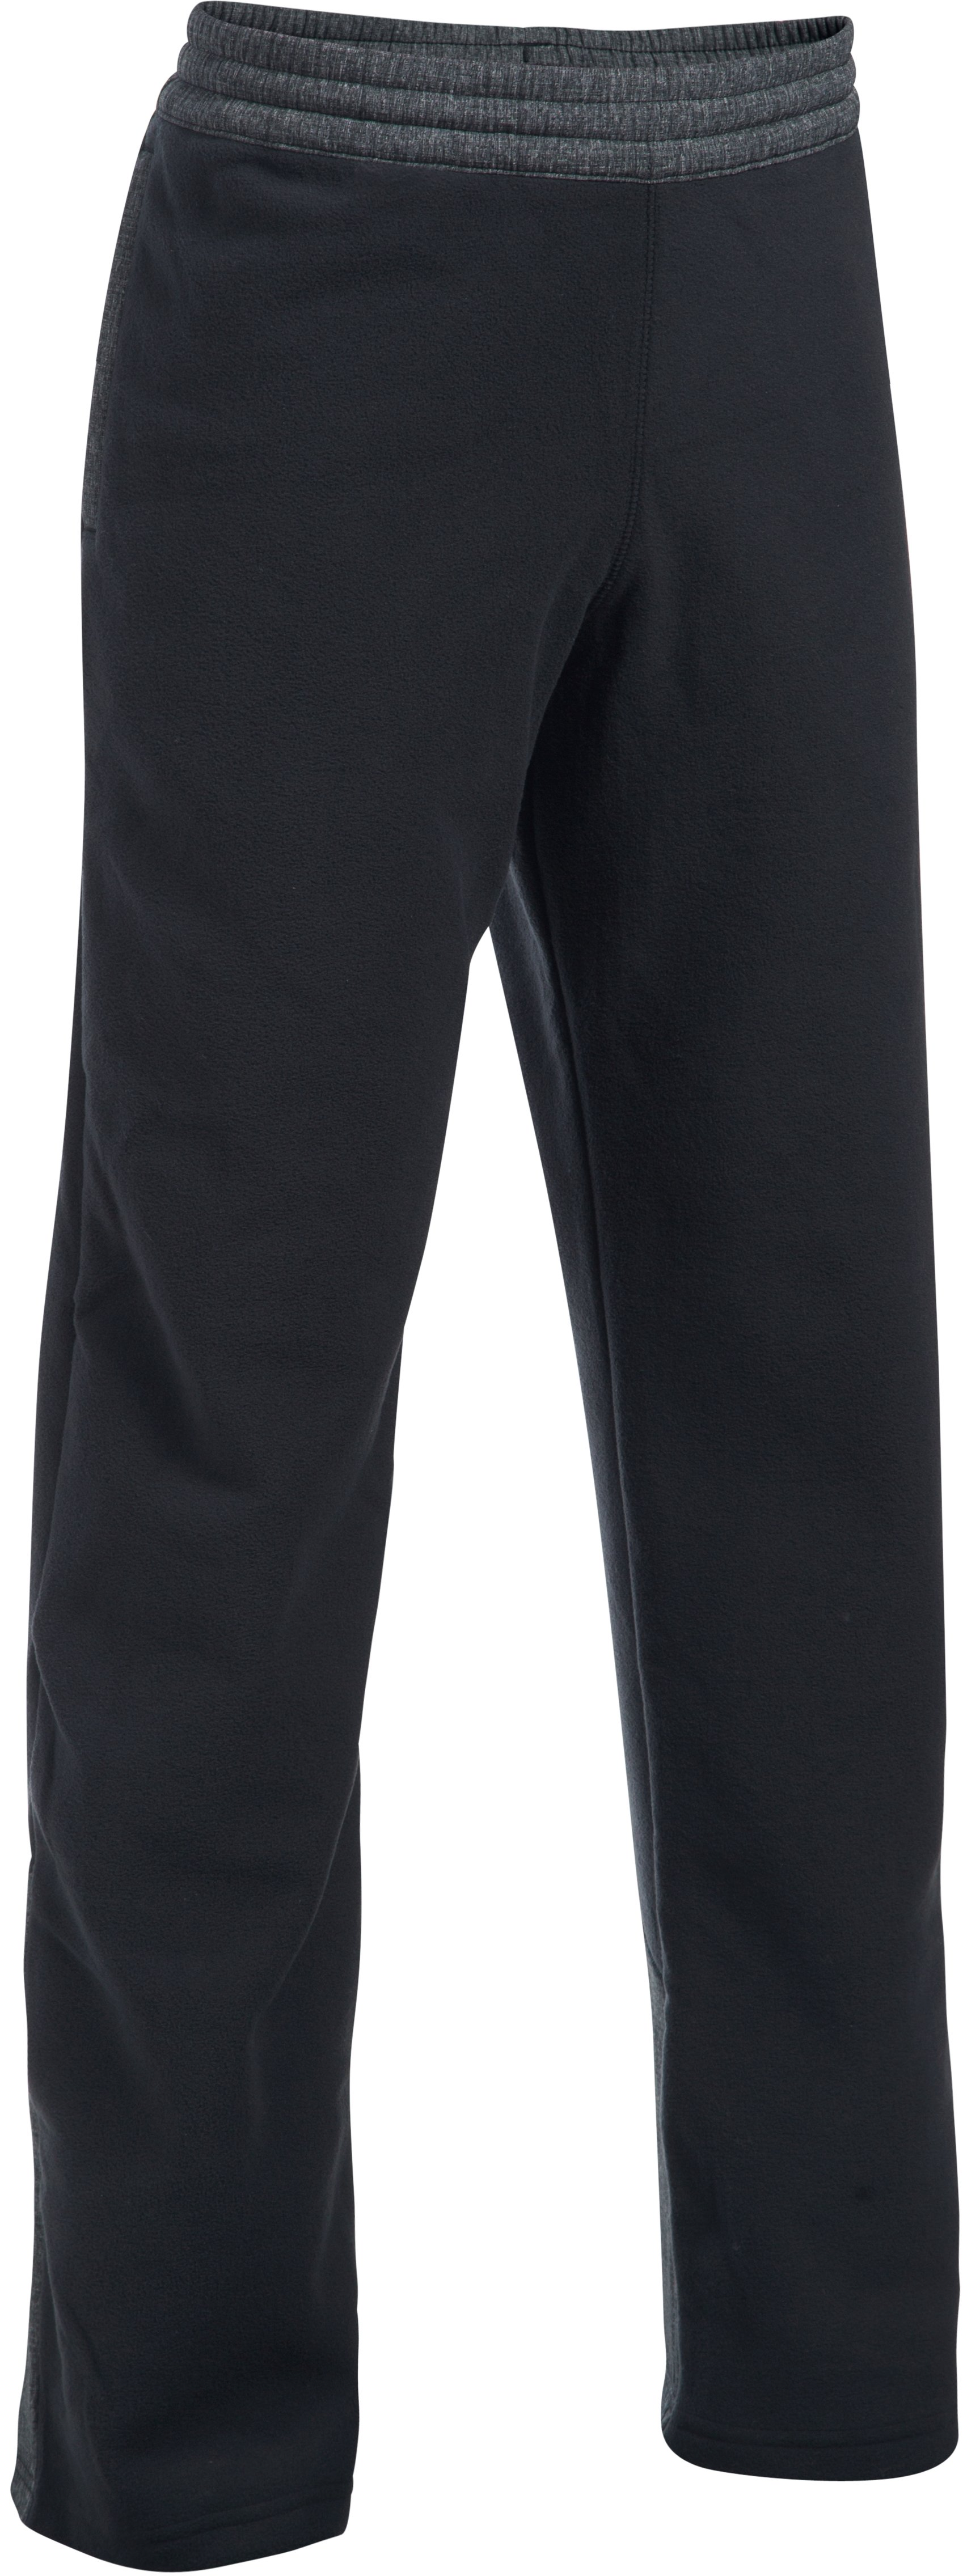 Boys' ColdGear® Infrared Fleece Pants, Black , undefined